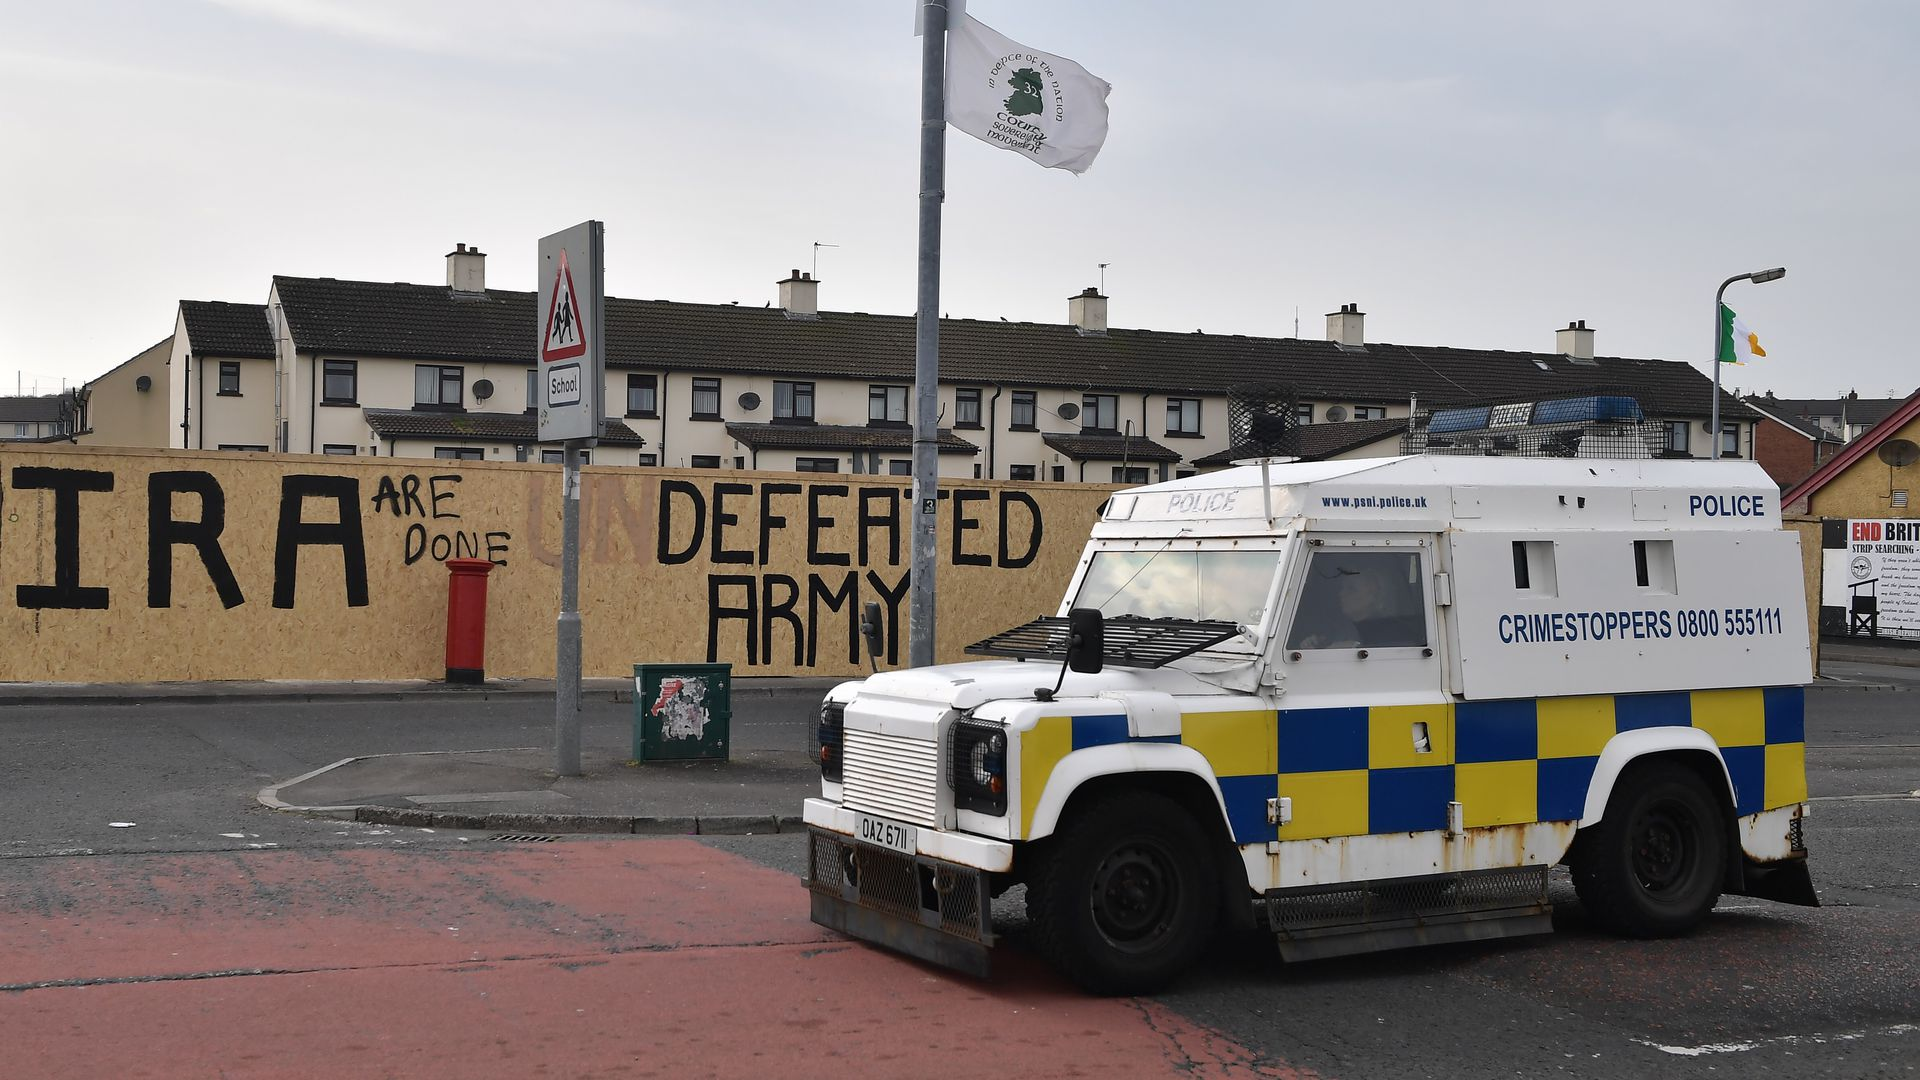 "In this image, an ambulance is parked on a street with a wall behind it that reads ""IRA are done: Defeated Army"""